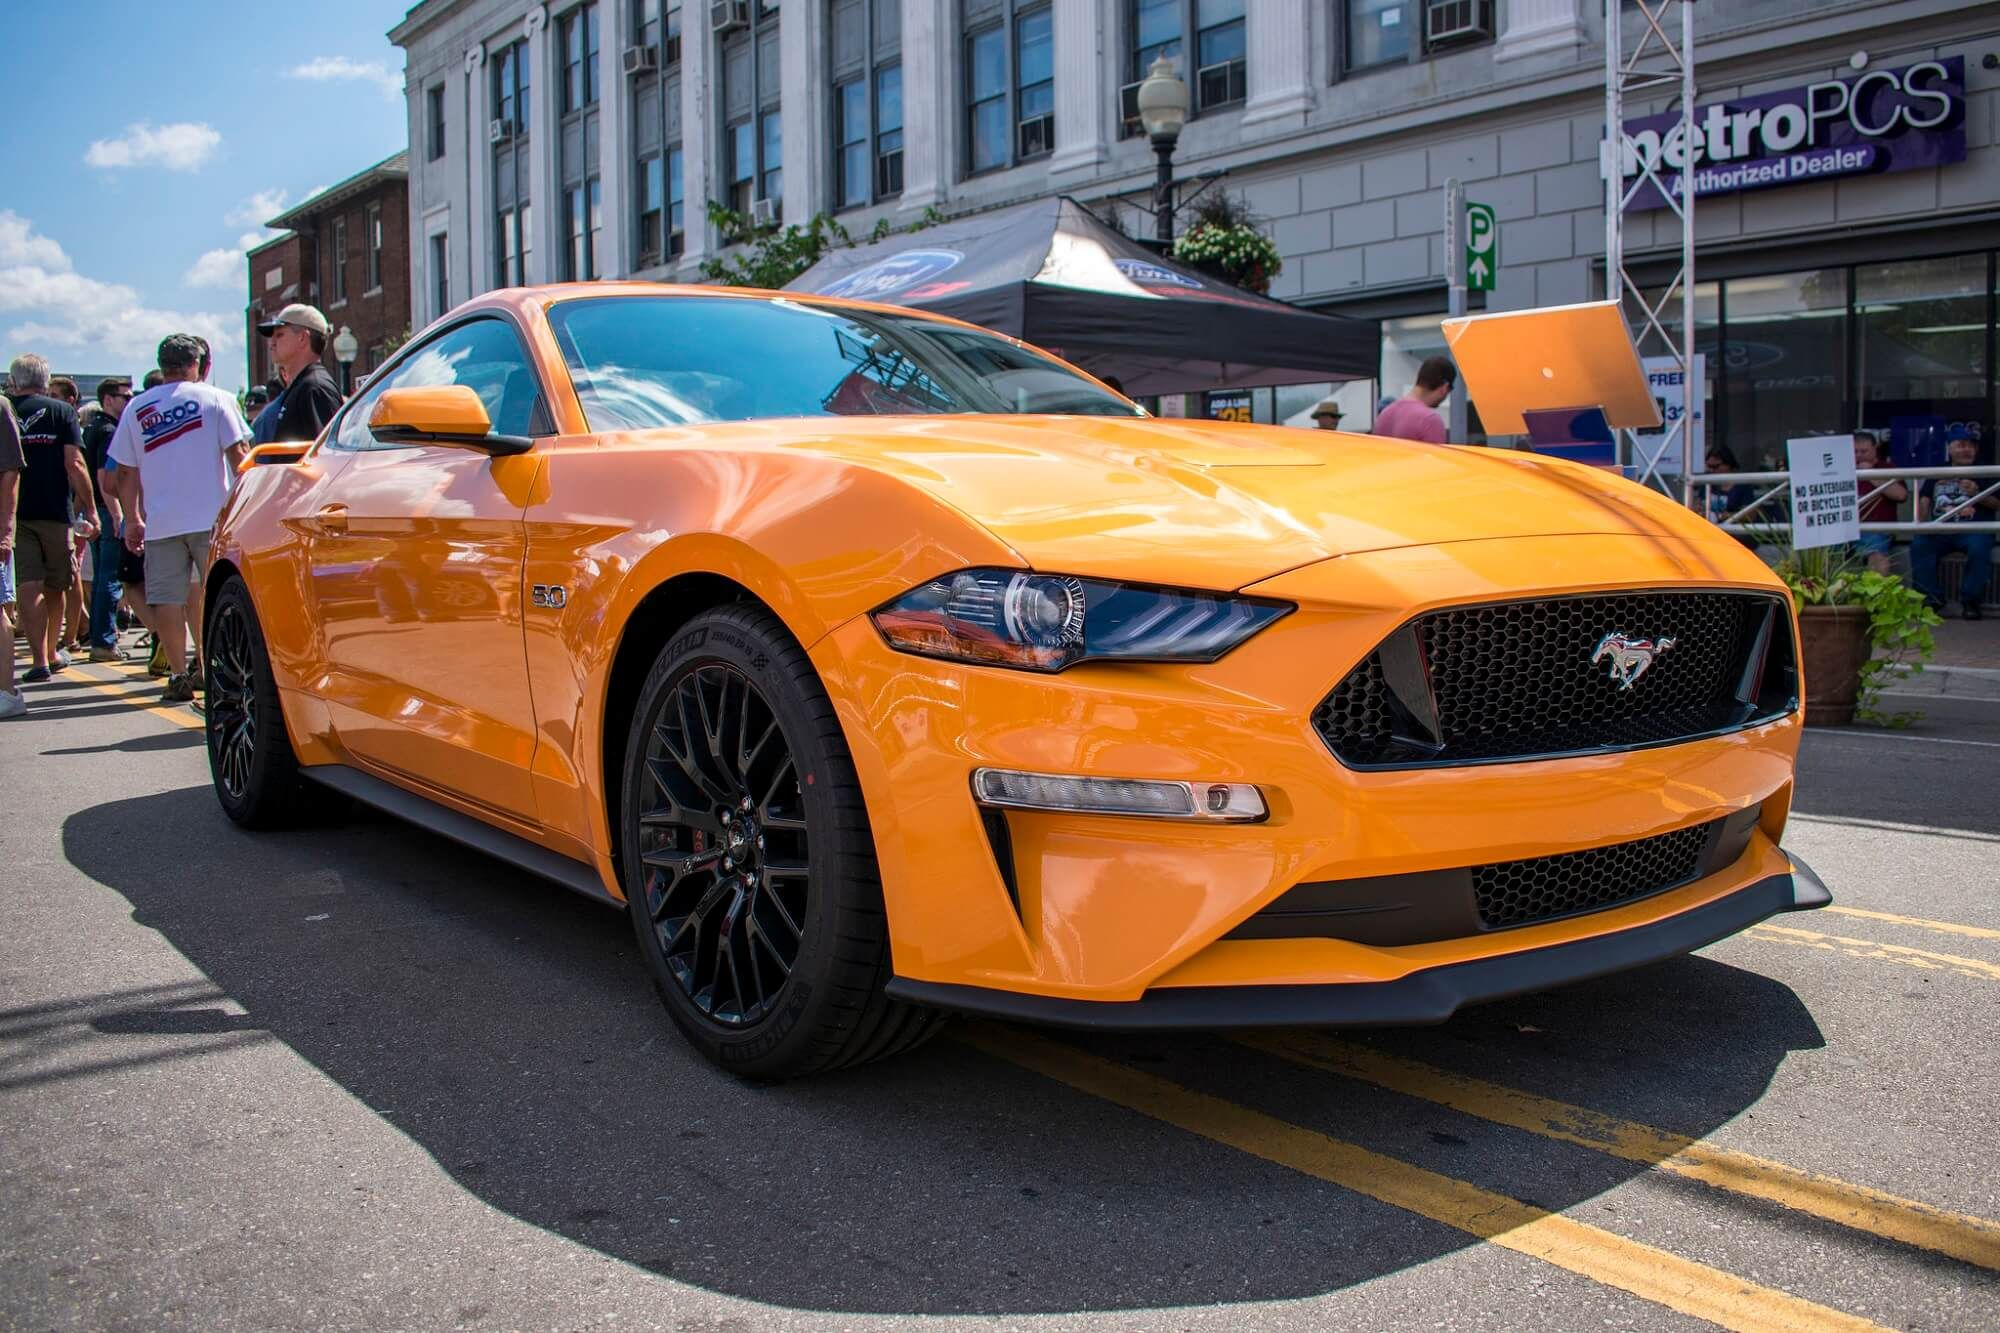 2018 Mustang Orange Fury Sports Cars Mustang Mustang Cars Mustang